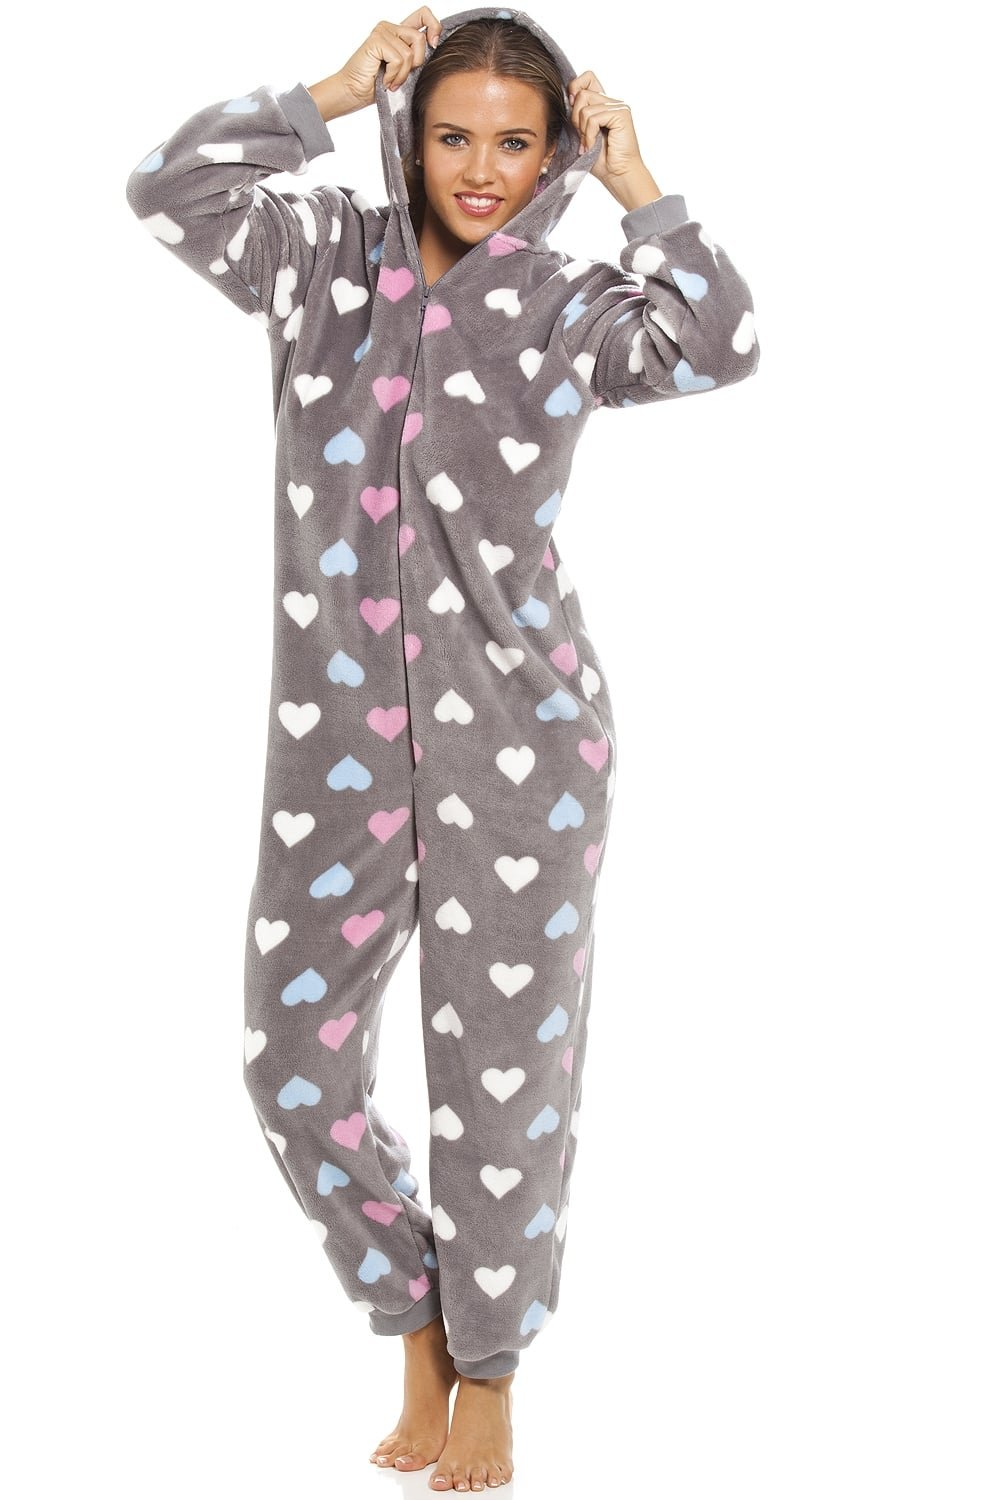 Camille Womens Ladies Multi Coloured Heart Print Supersoft Grey Onesie